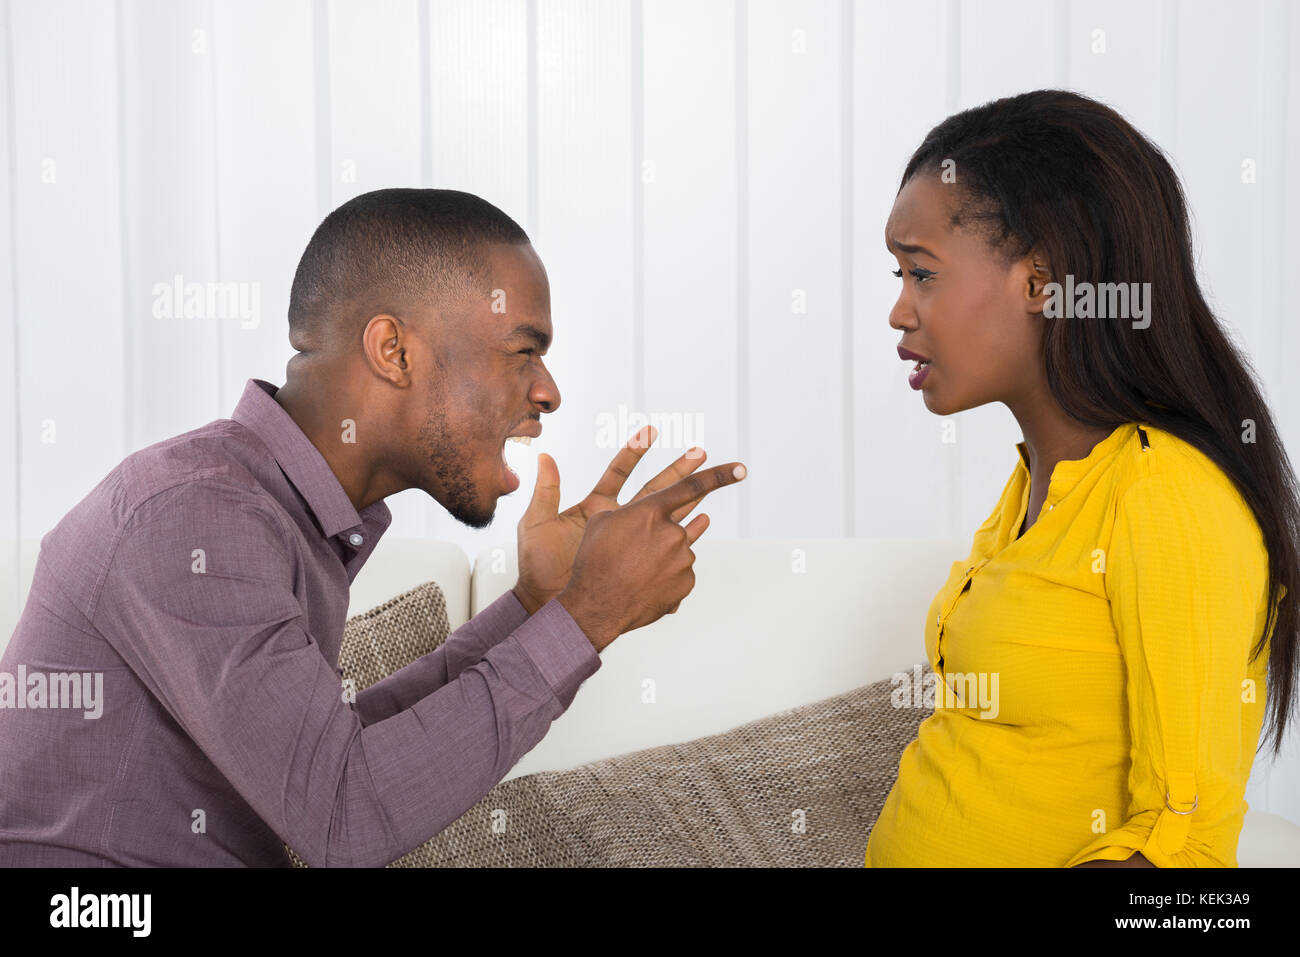 Angry Young African Man Screaming At Woman - Stock Image